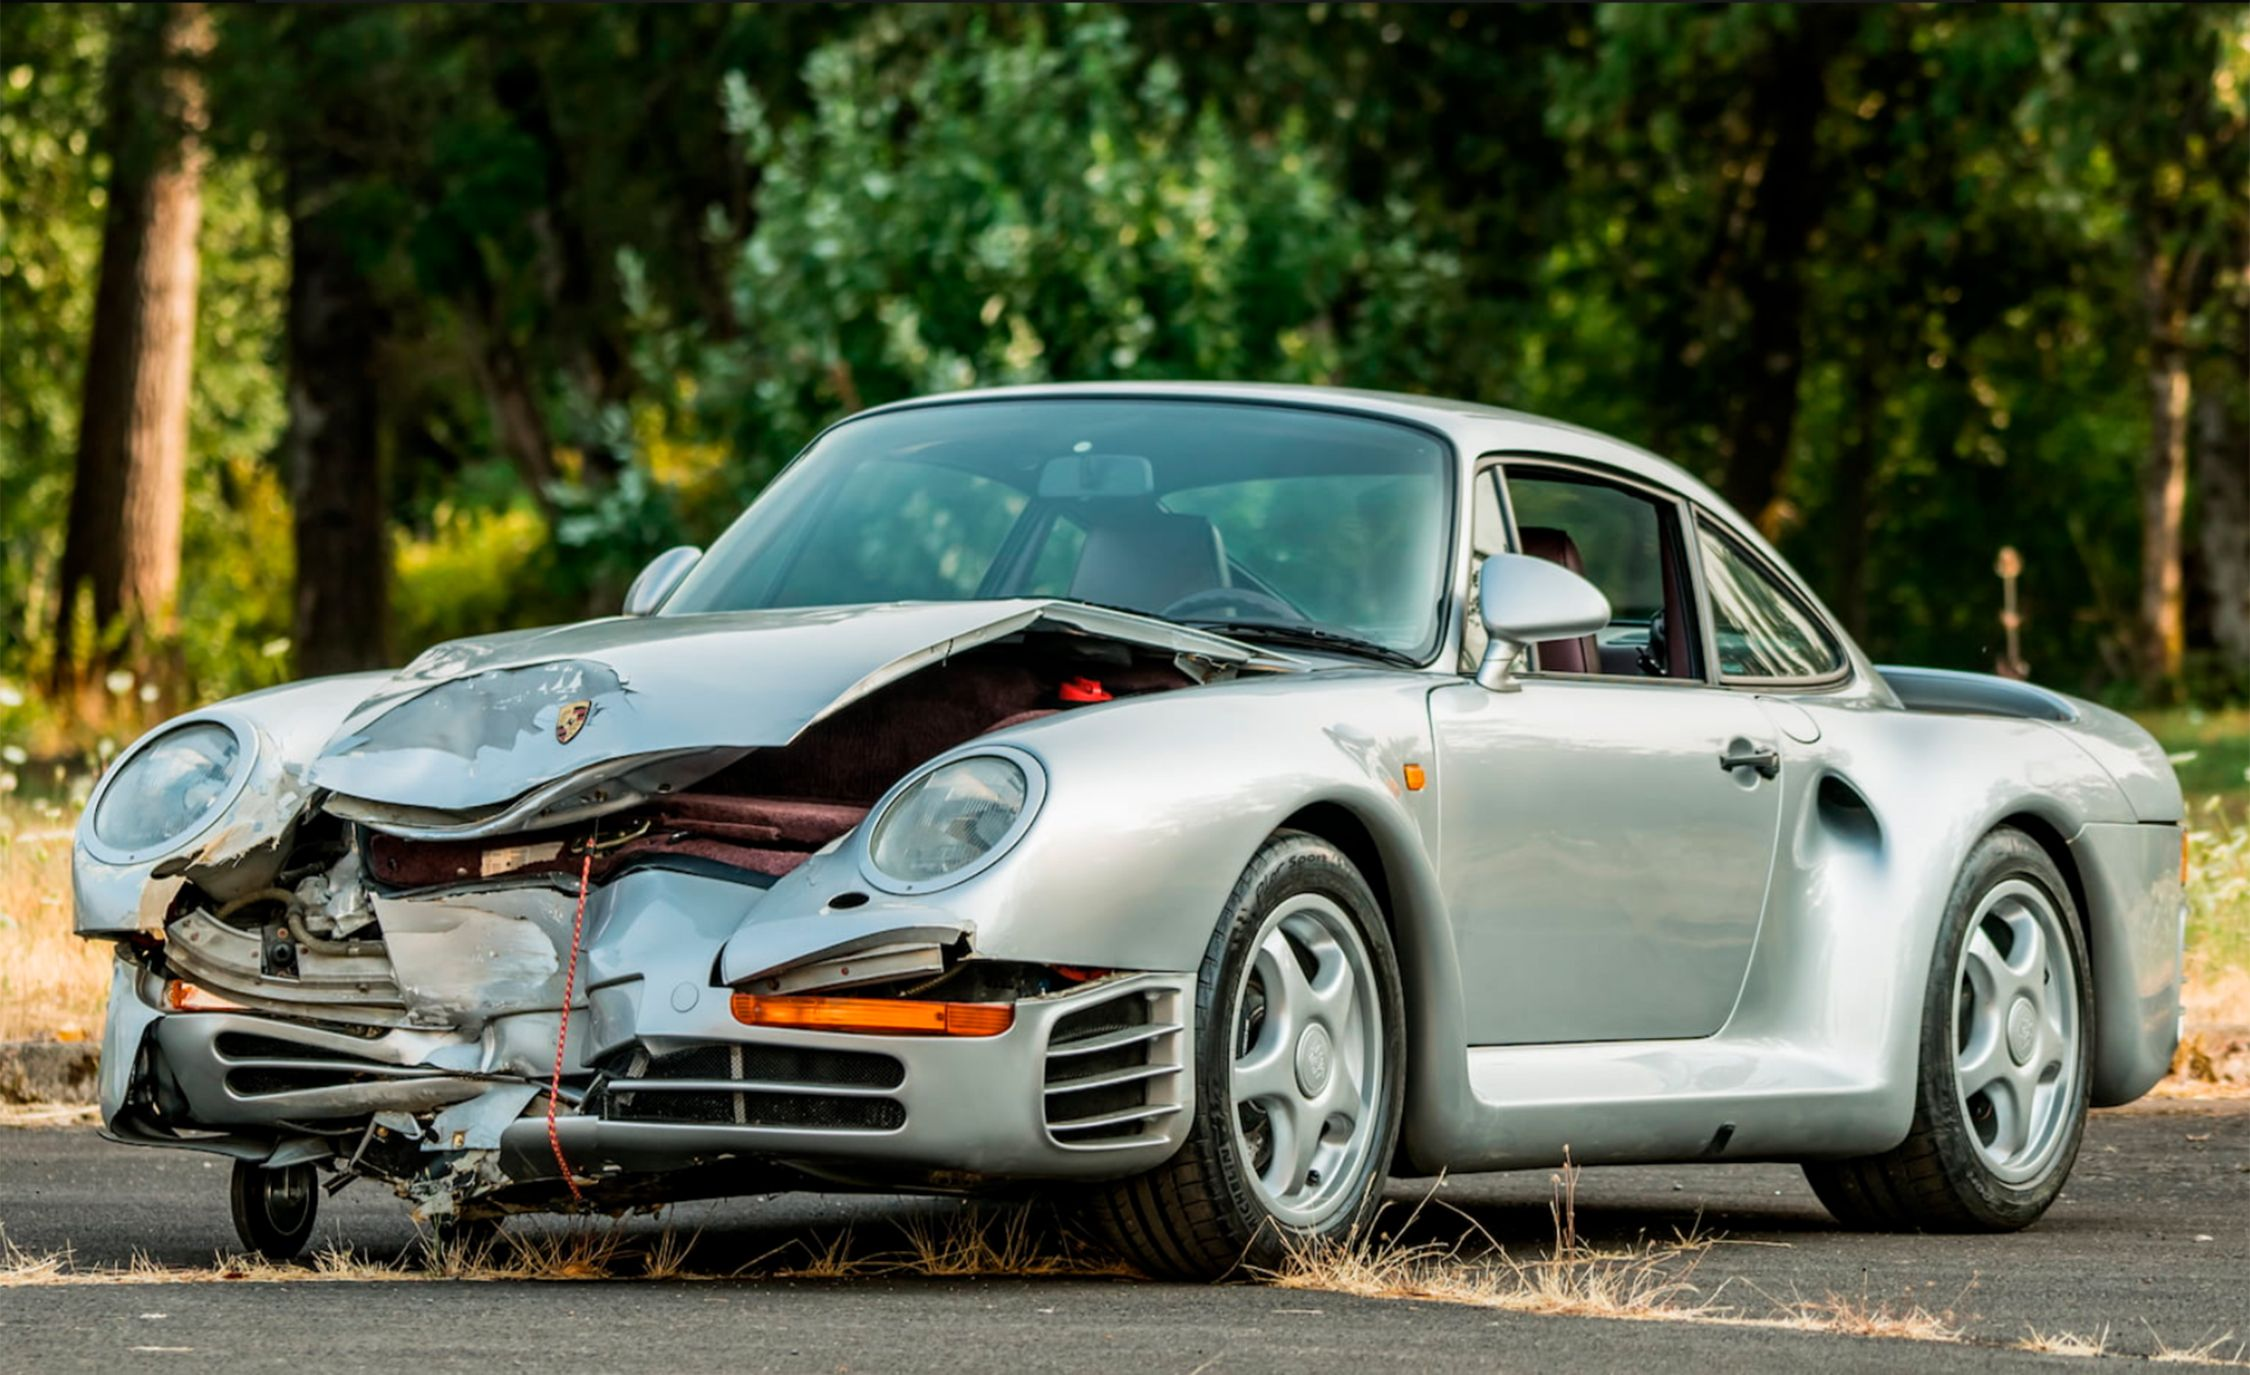 Want a Discounted Porsche 959? Buy This Wrecked One